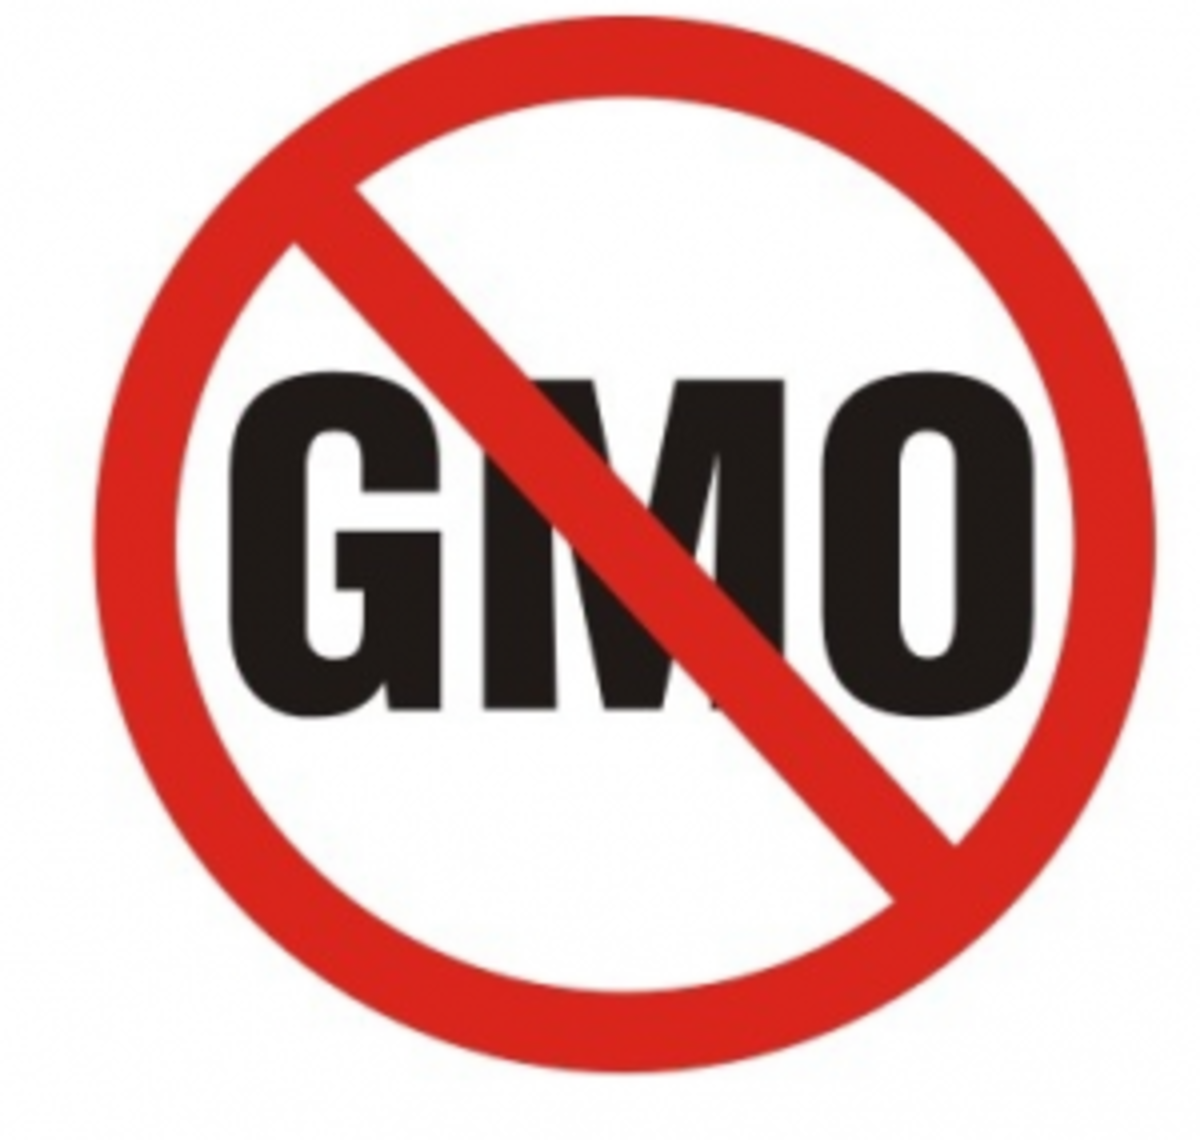 8 Steps to Take Action Against Genetically Modified Organisms in Food: No More GMOs